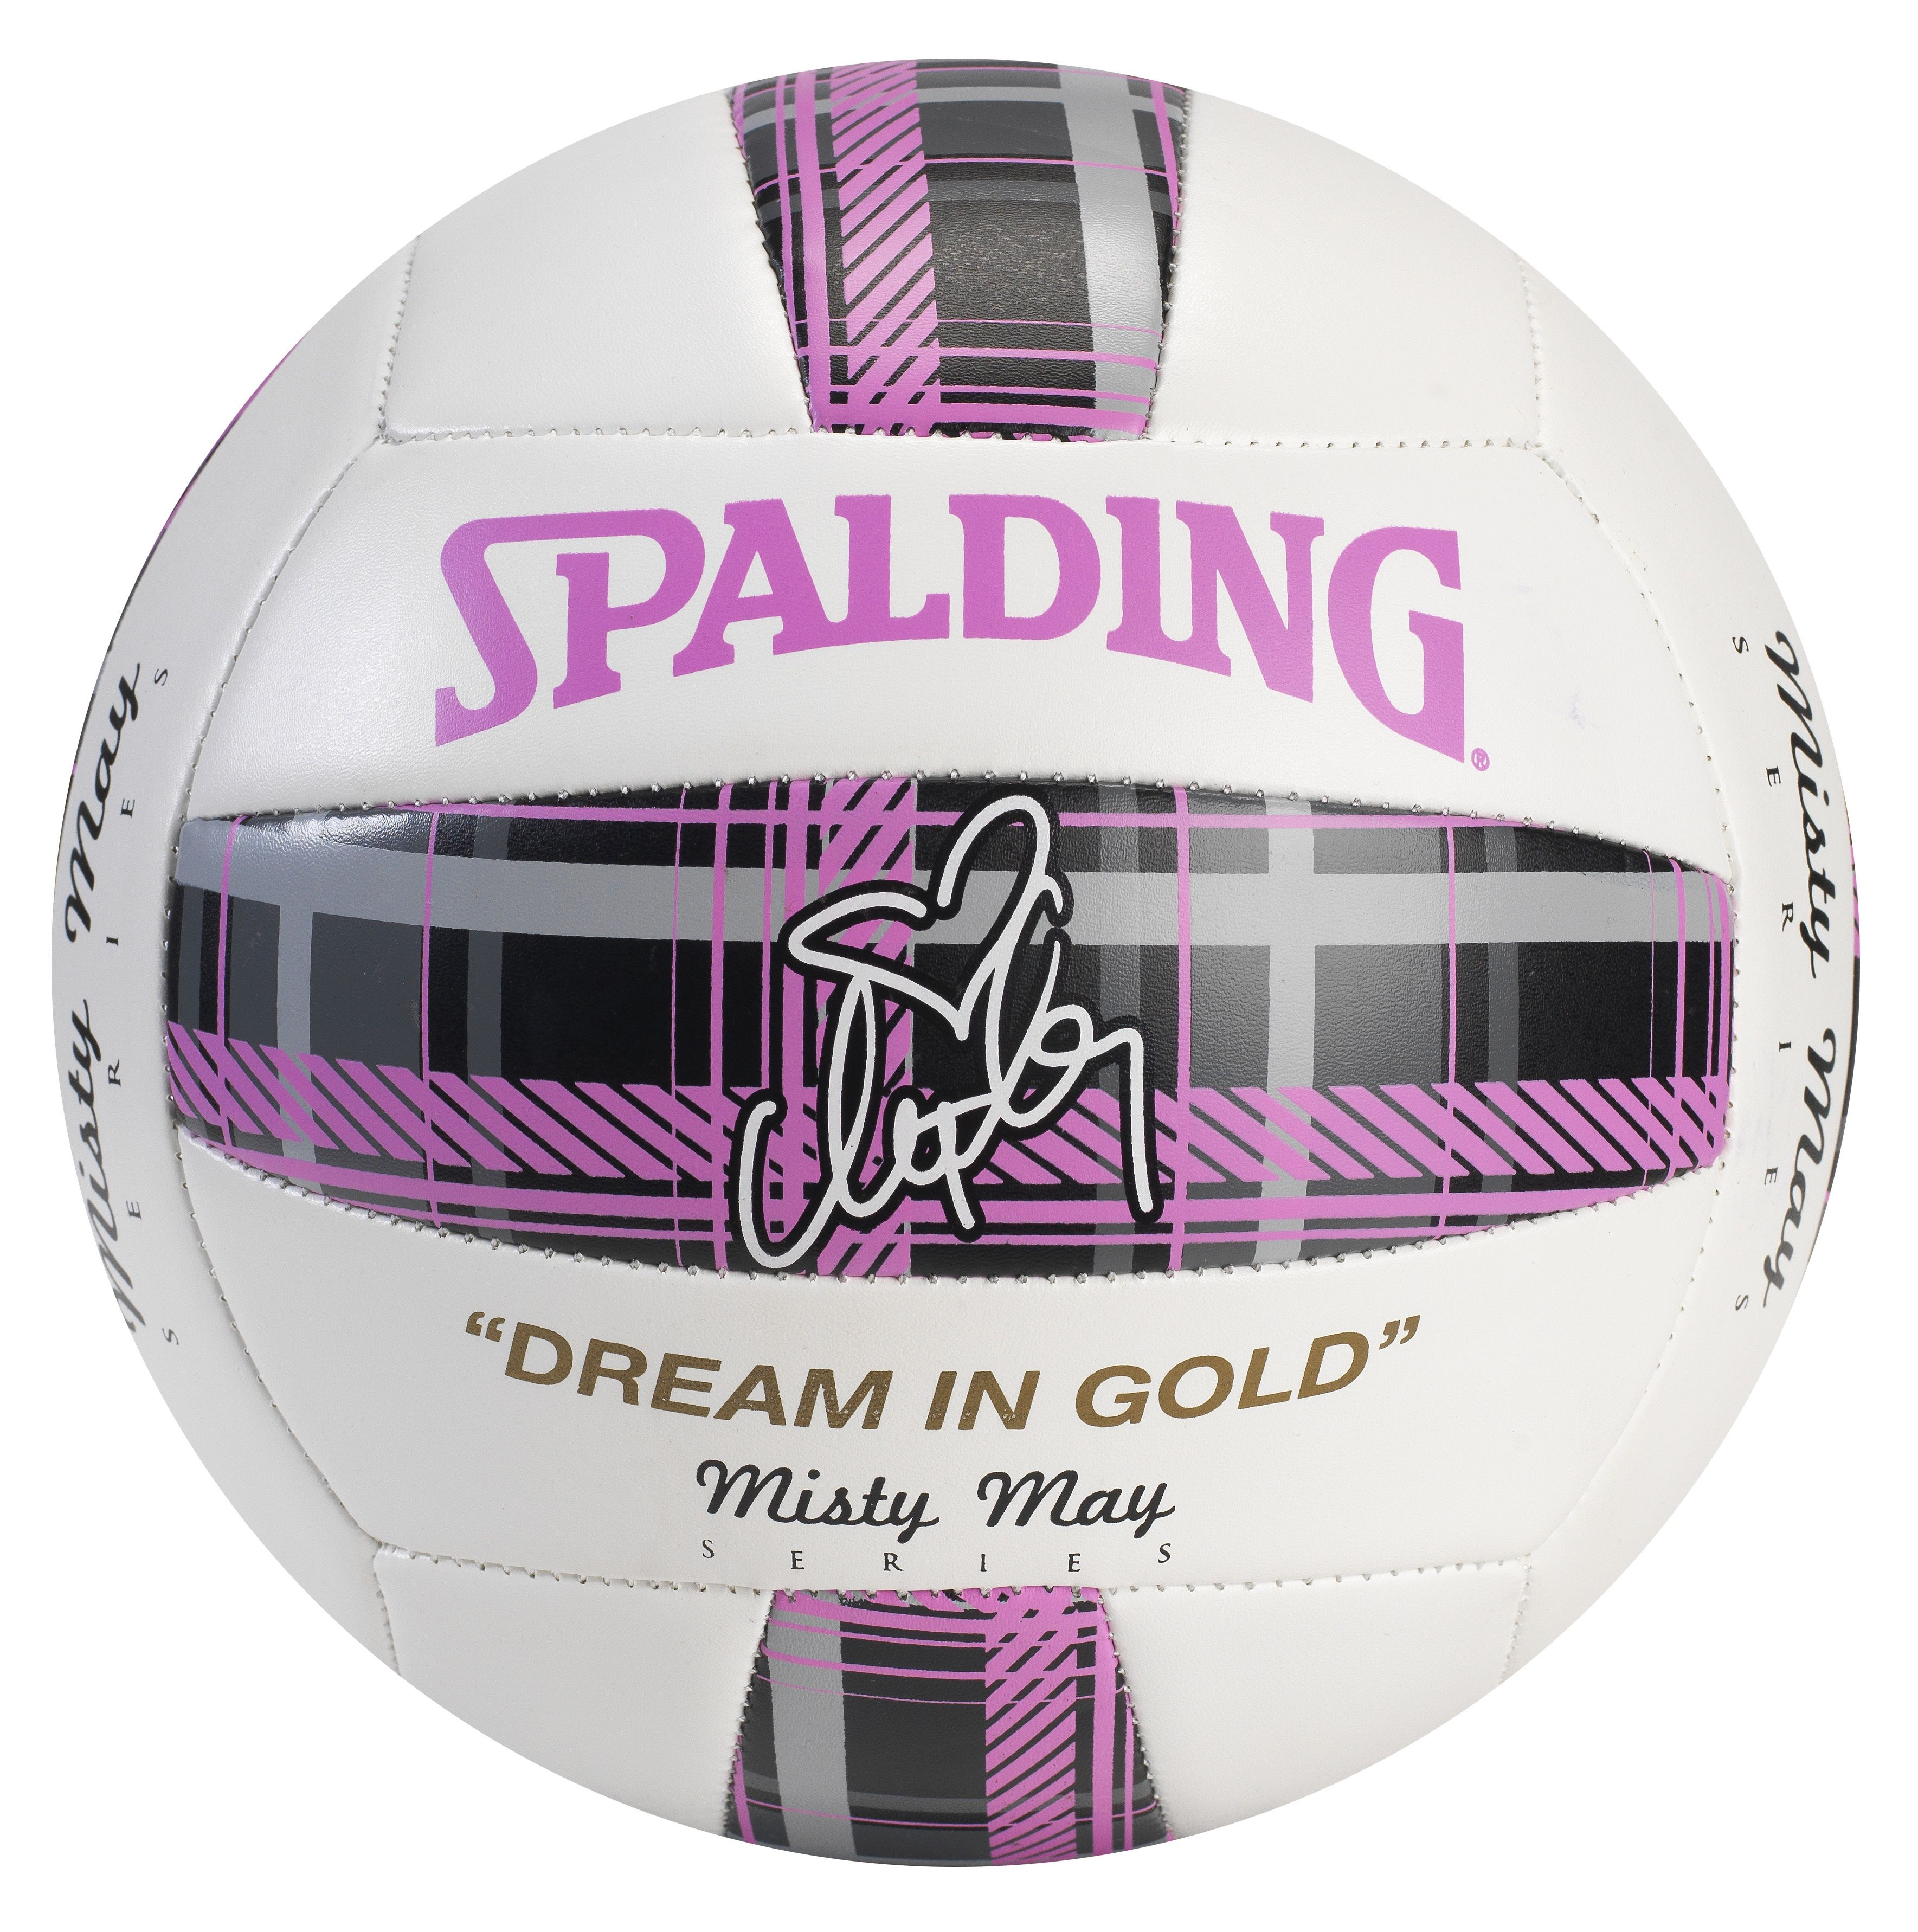 Misty May Ball By Spalding Available At Target And Other Fine Sporting Goods Retailers Volleyball Basketball Equipment Volleyball Gear